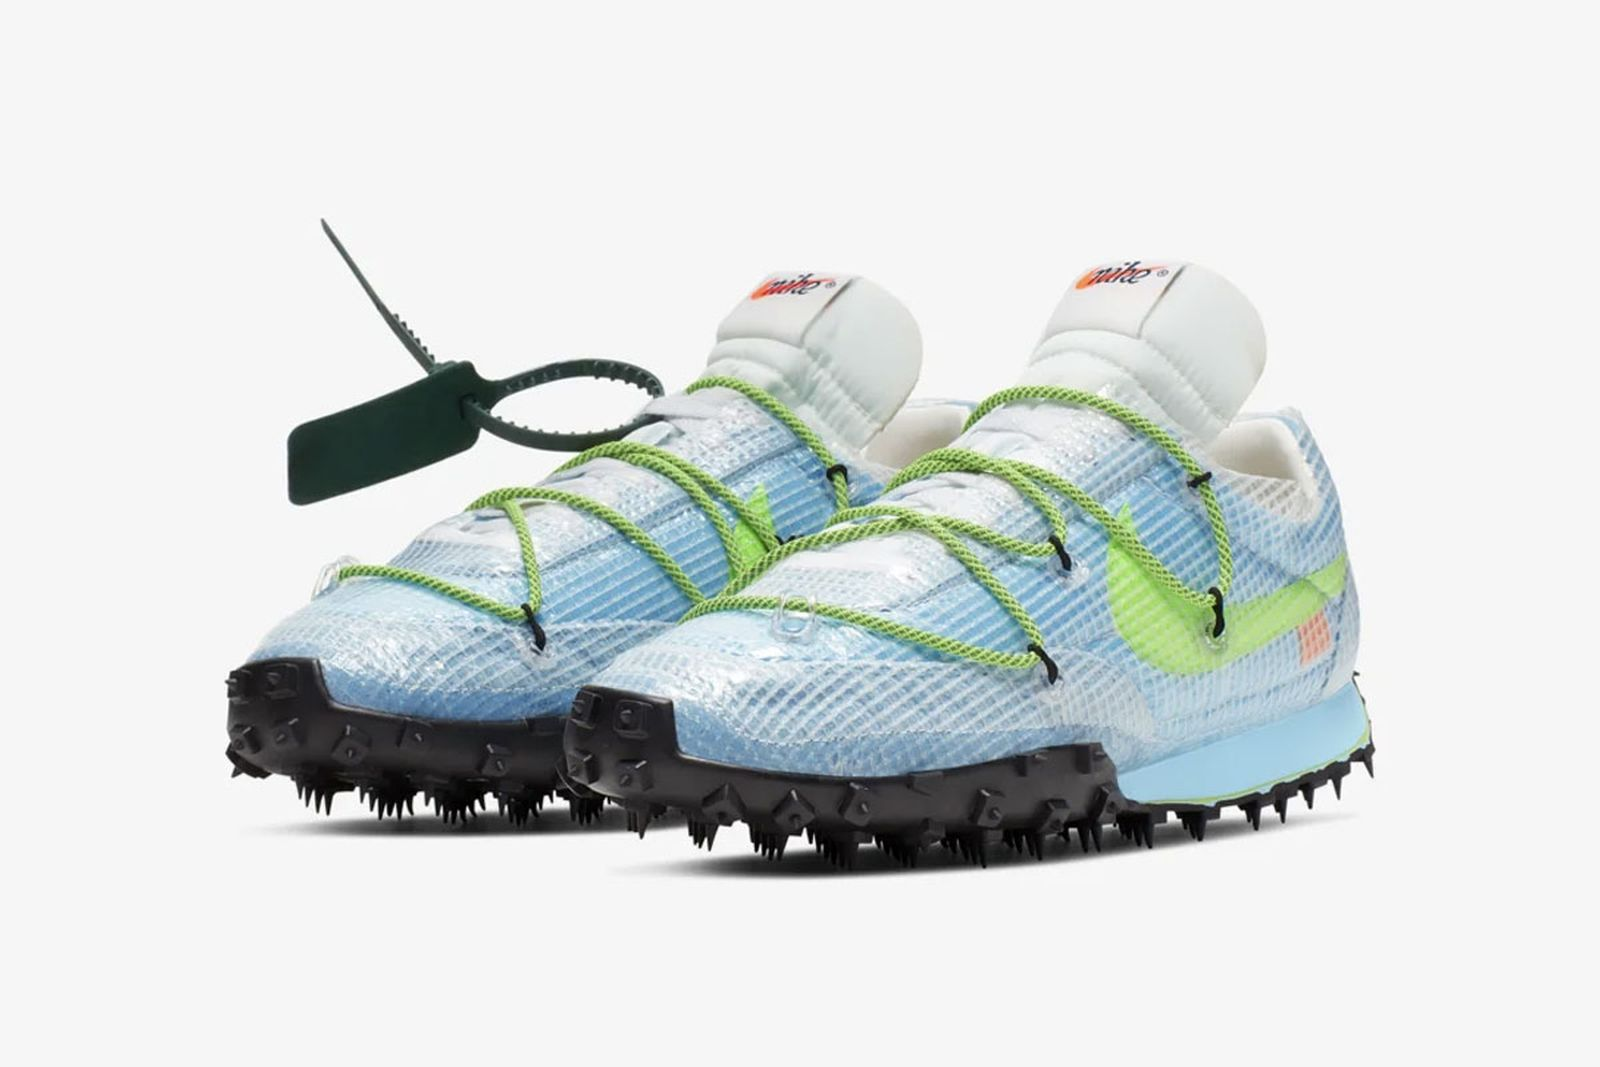 off-white-nike-waffle-racer-sp-release-date-price-03